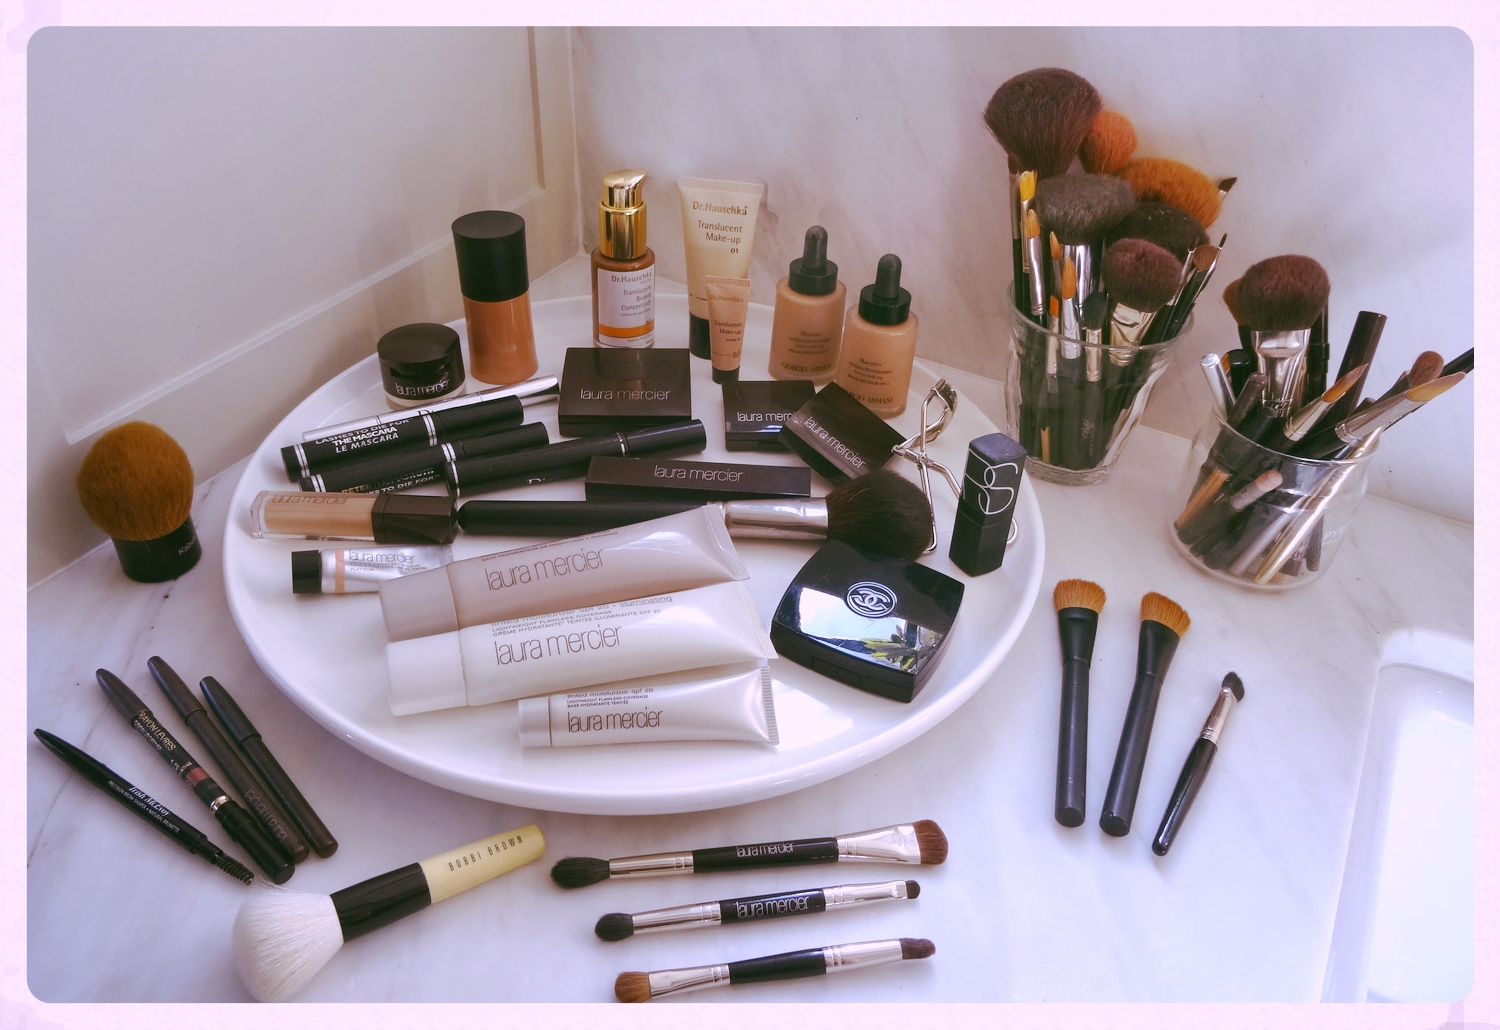 A collection of my mom's makeup